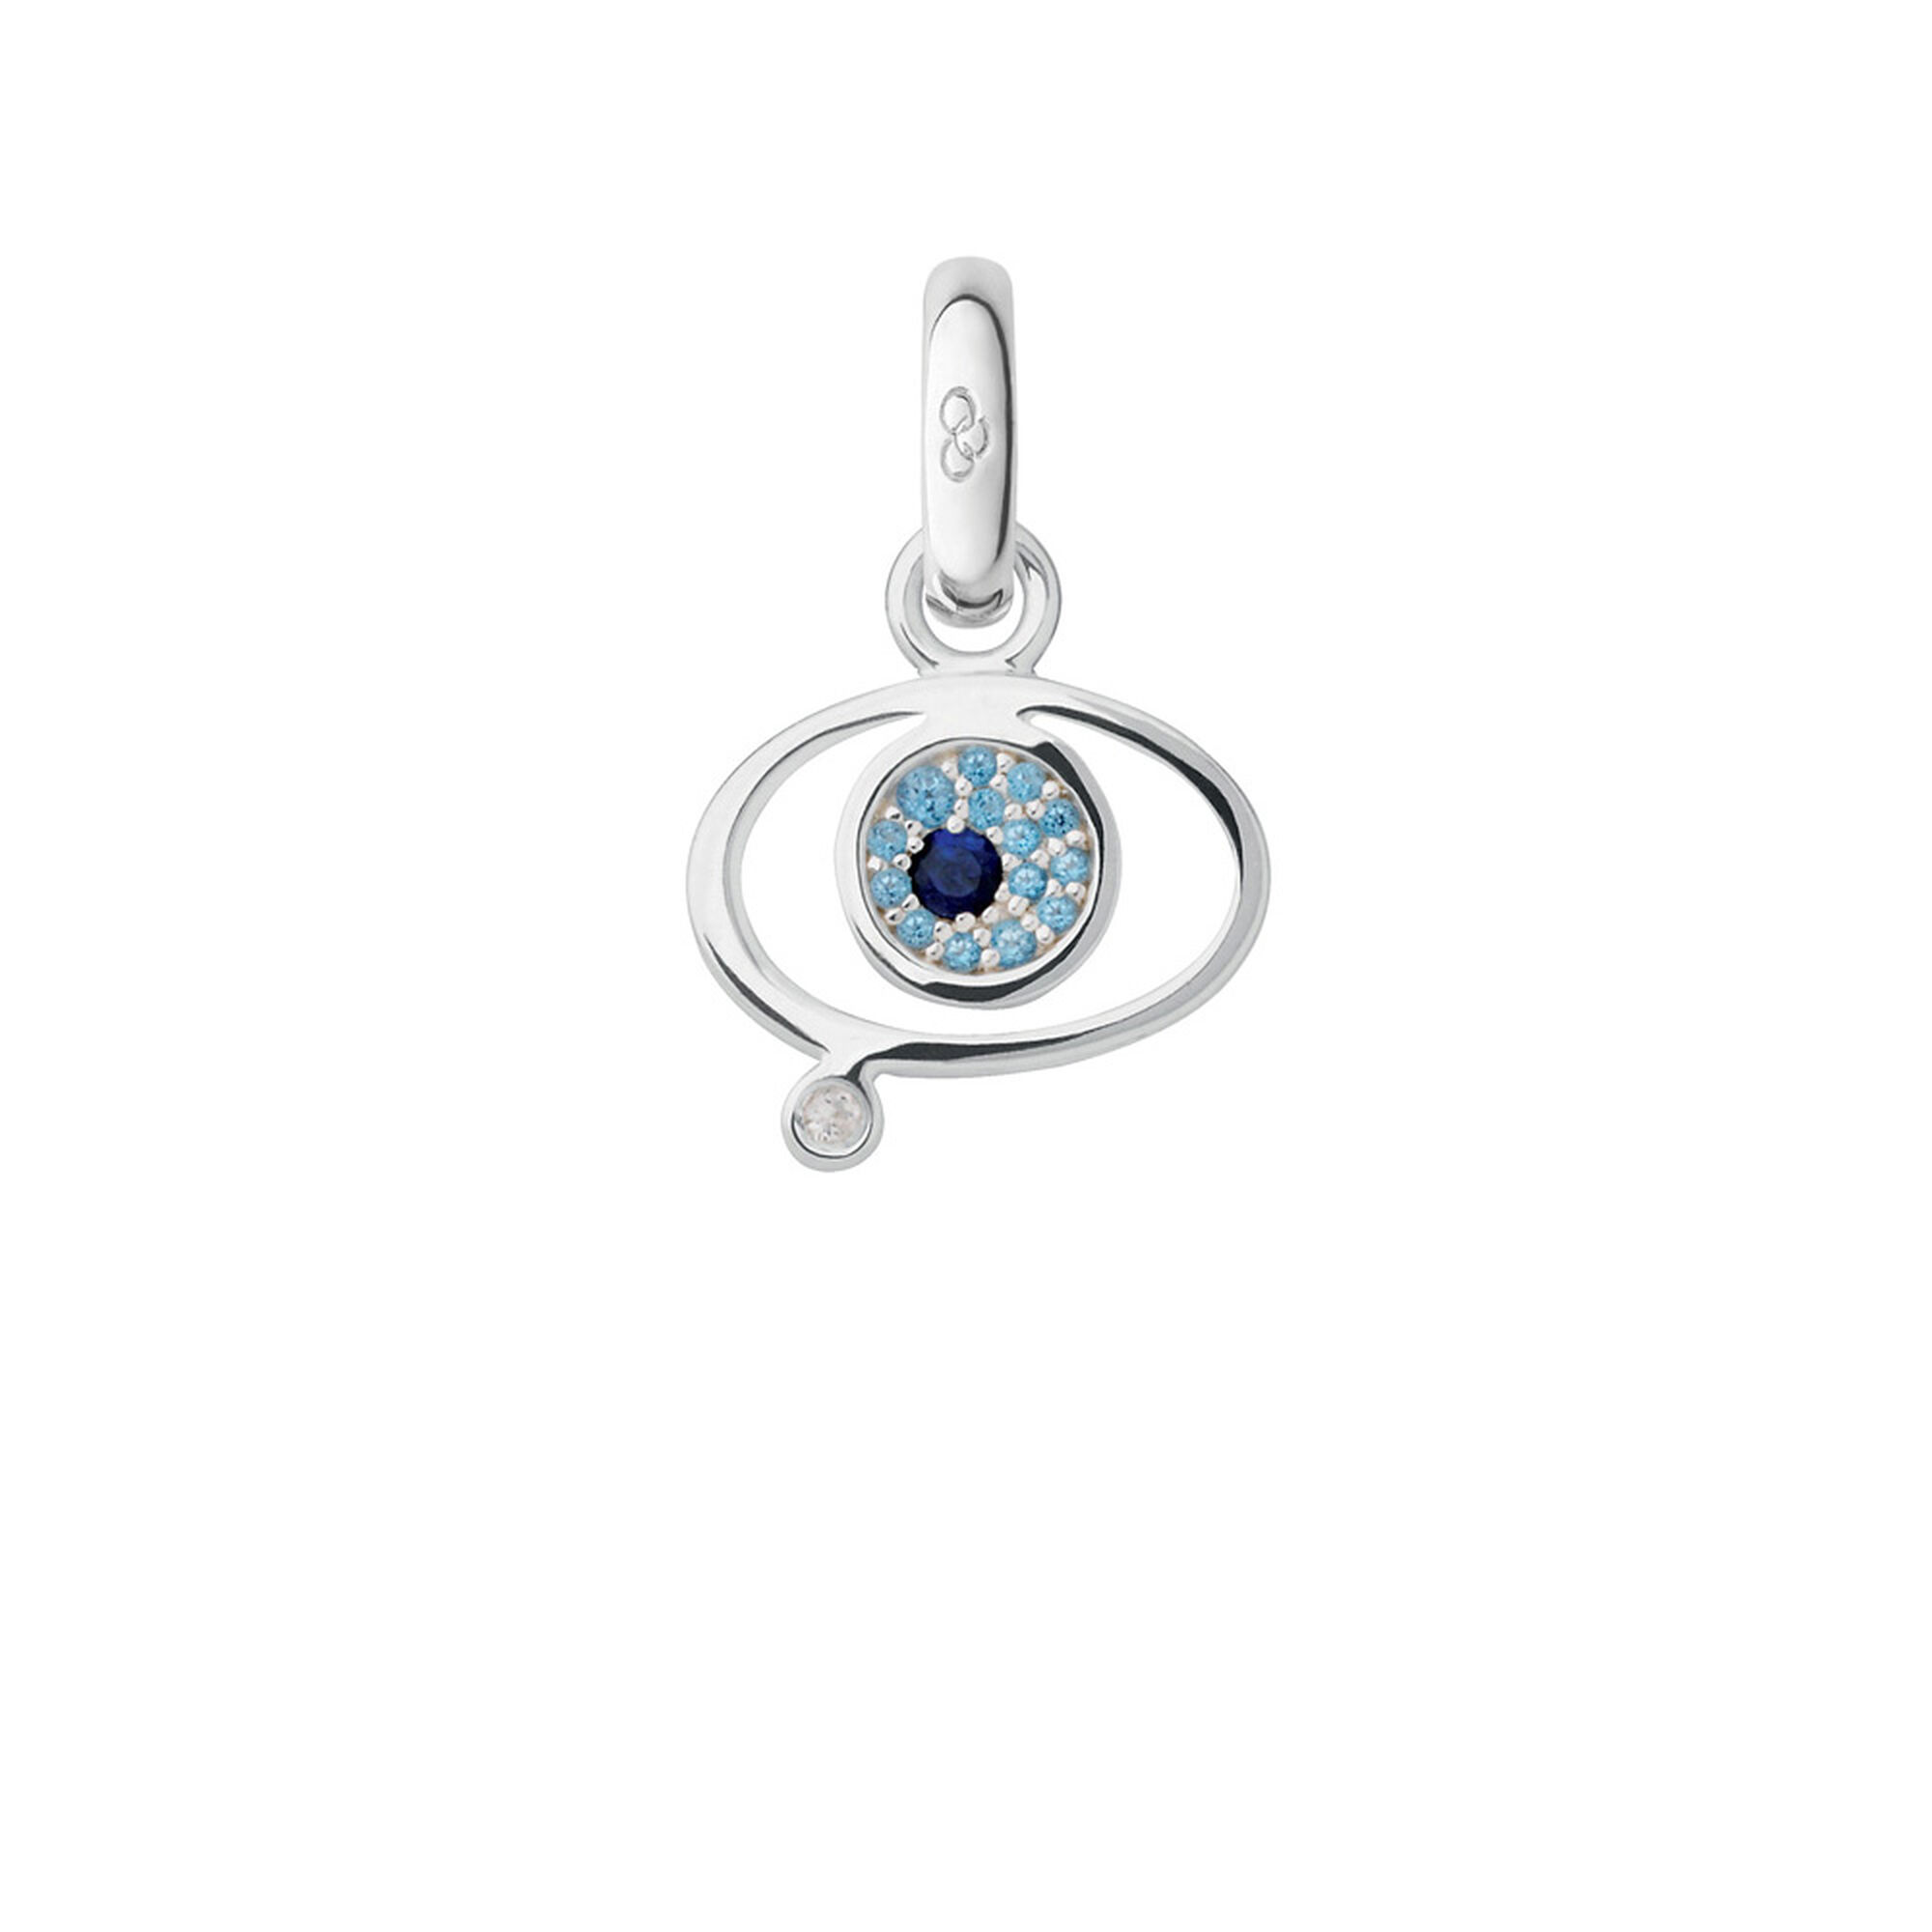 evil swarovski luckily necklace lyst s jewelry platingwhite rhodium eye women